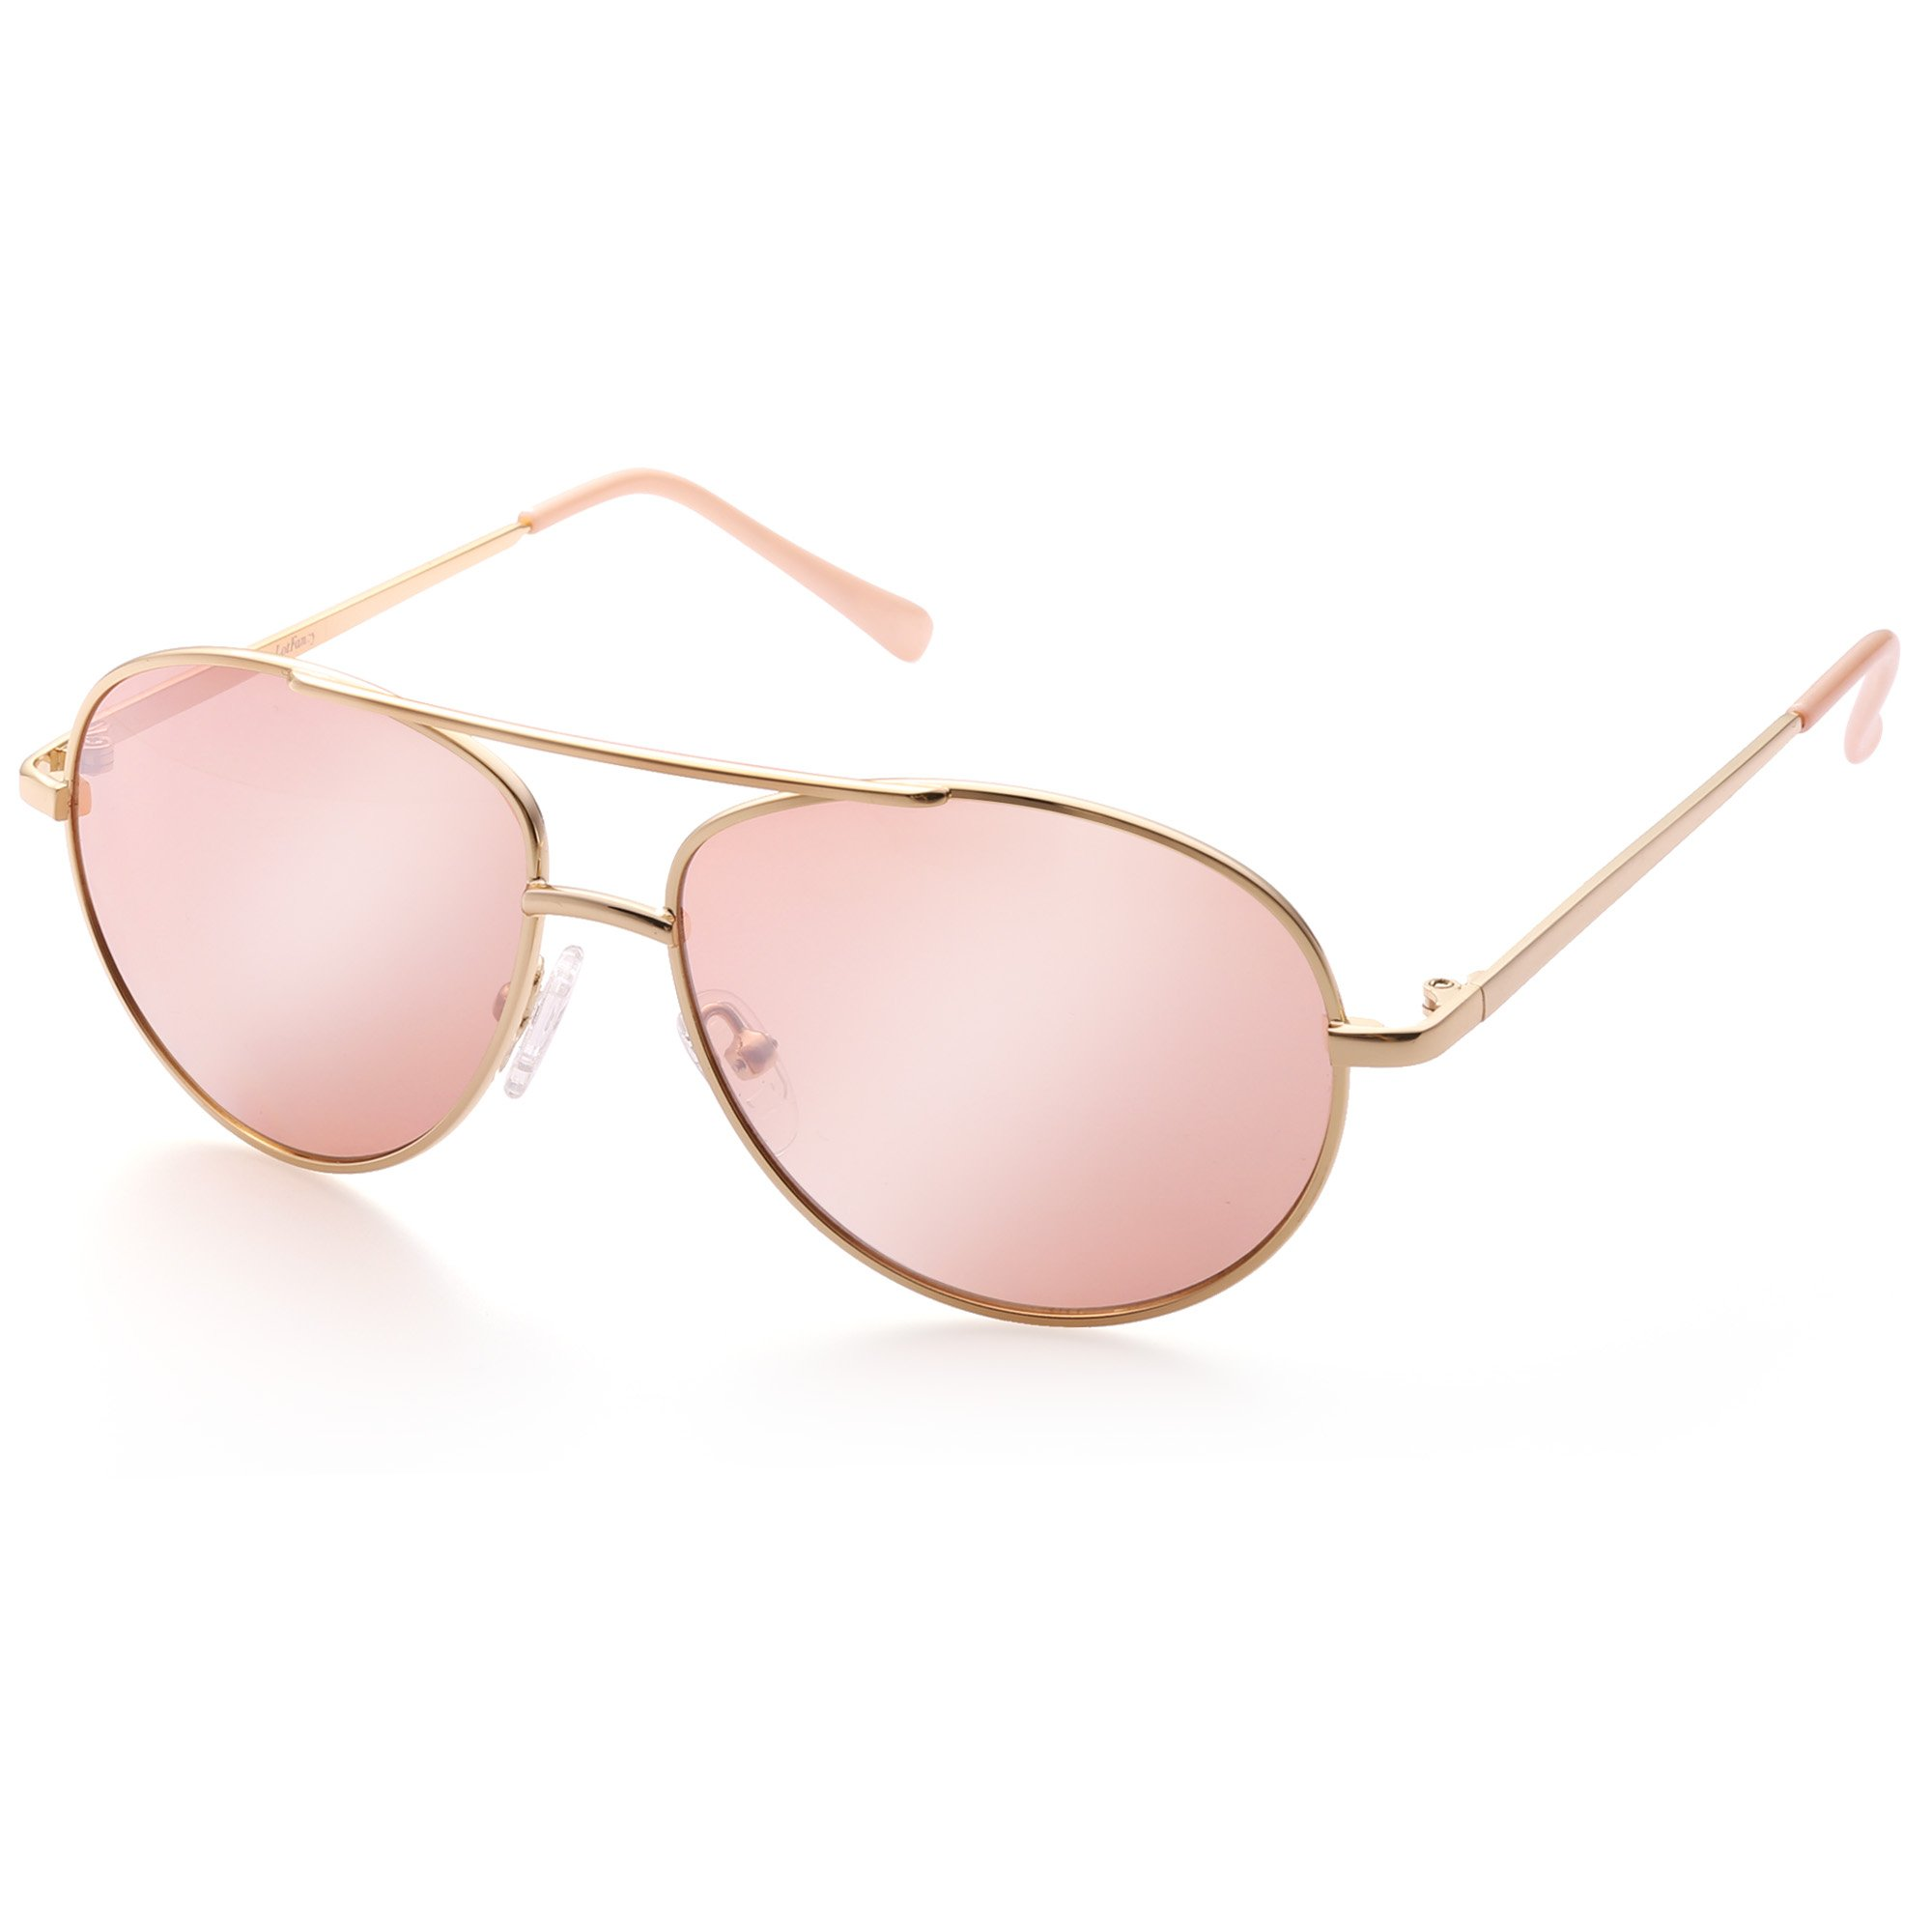 Aviator Sunglasses for Kids Girls Children, Gold Metal Frame, Pink Tinted Lens, FDA Approved